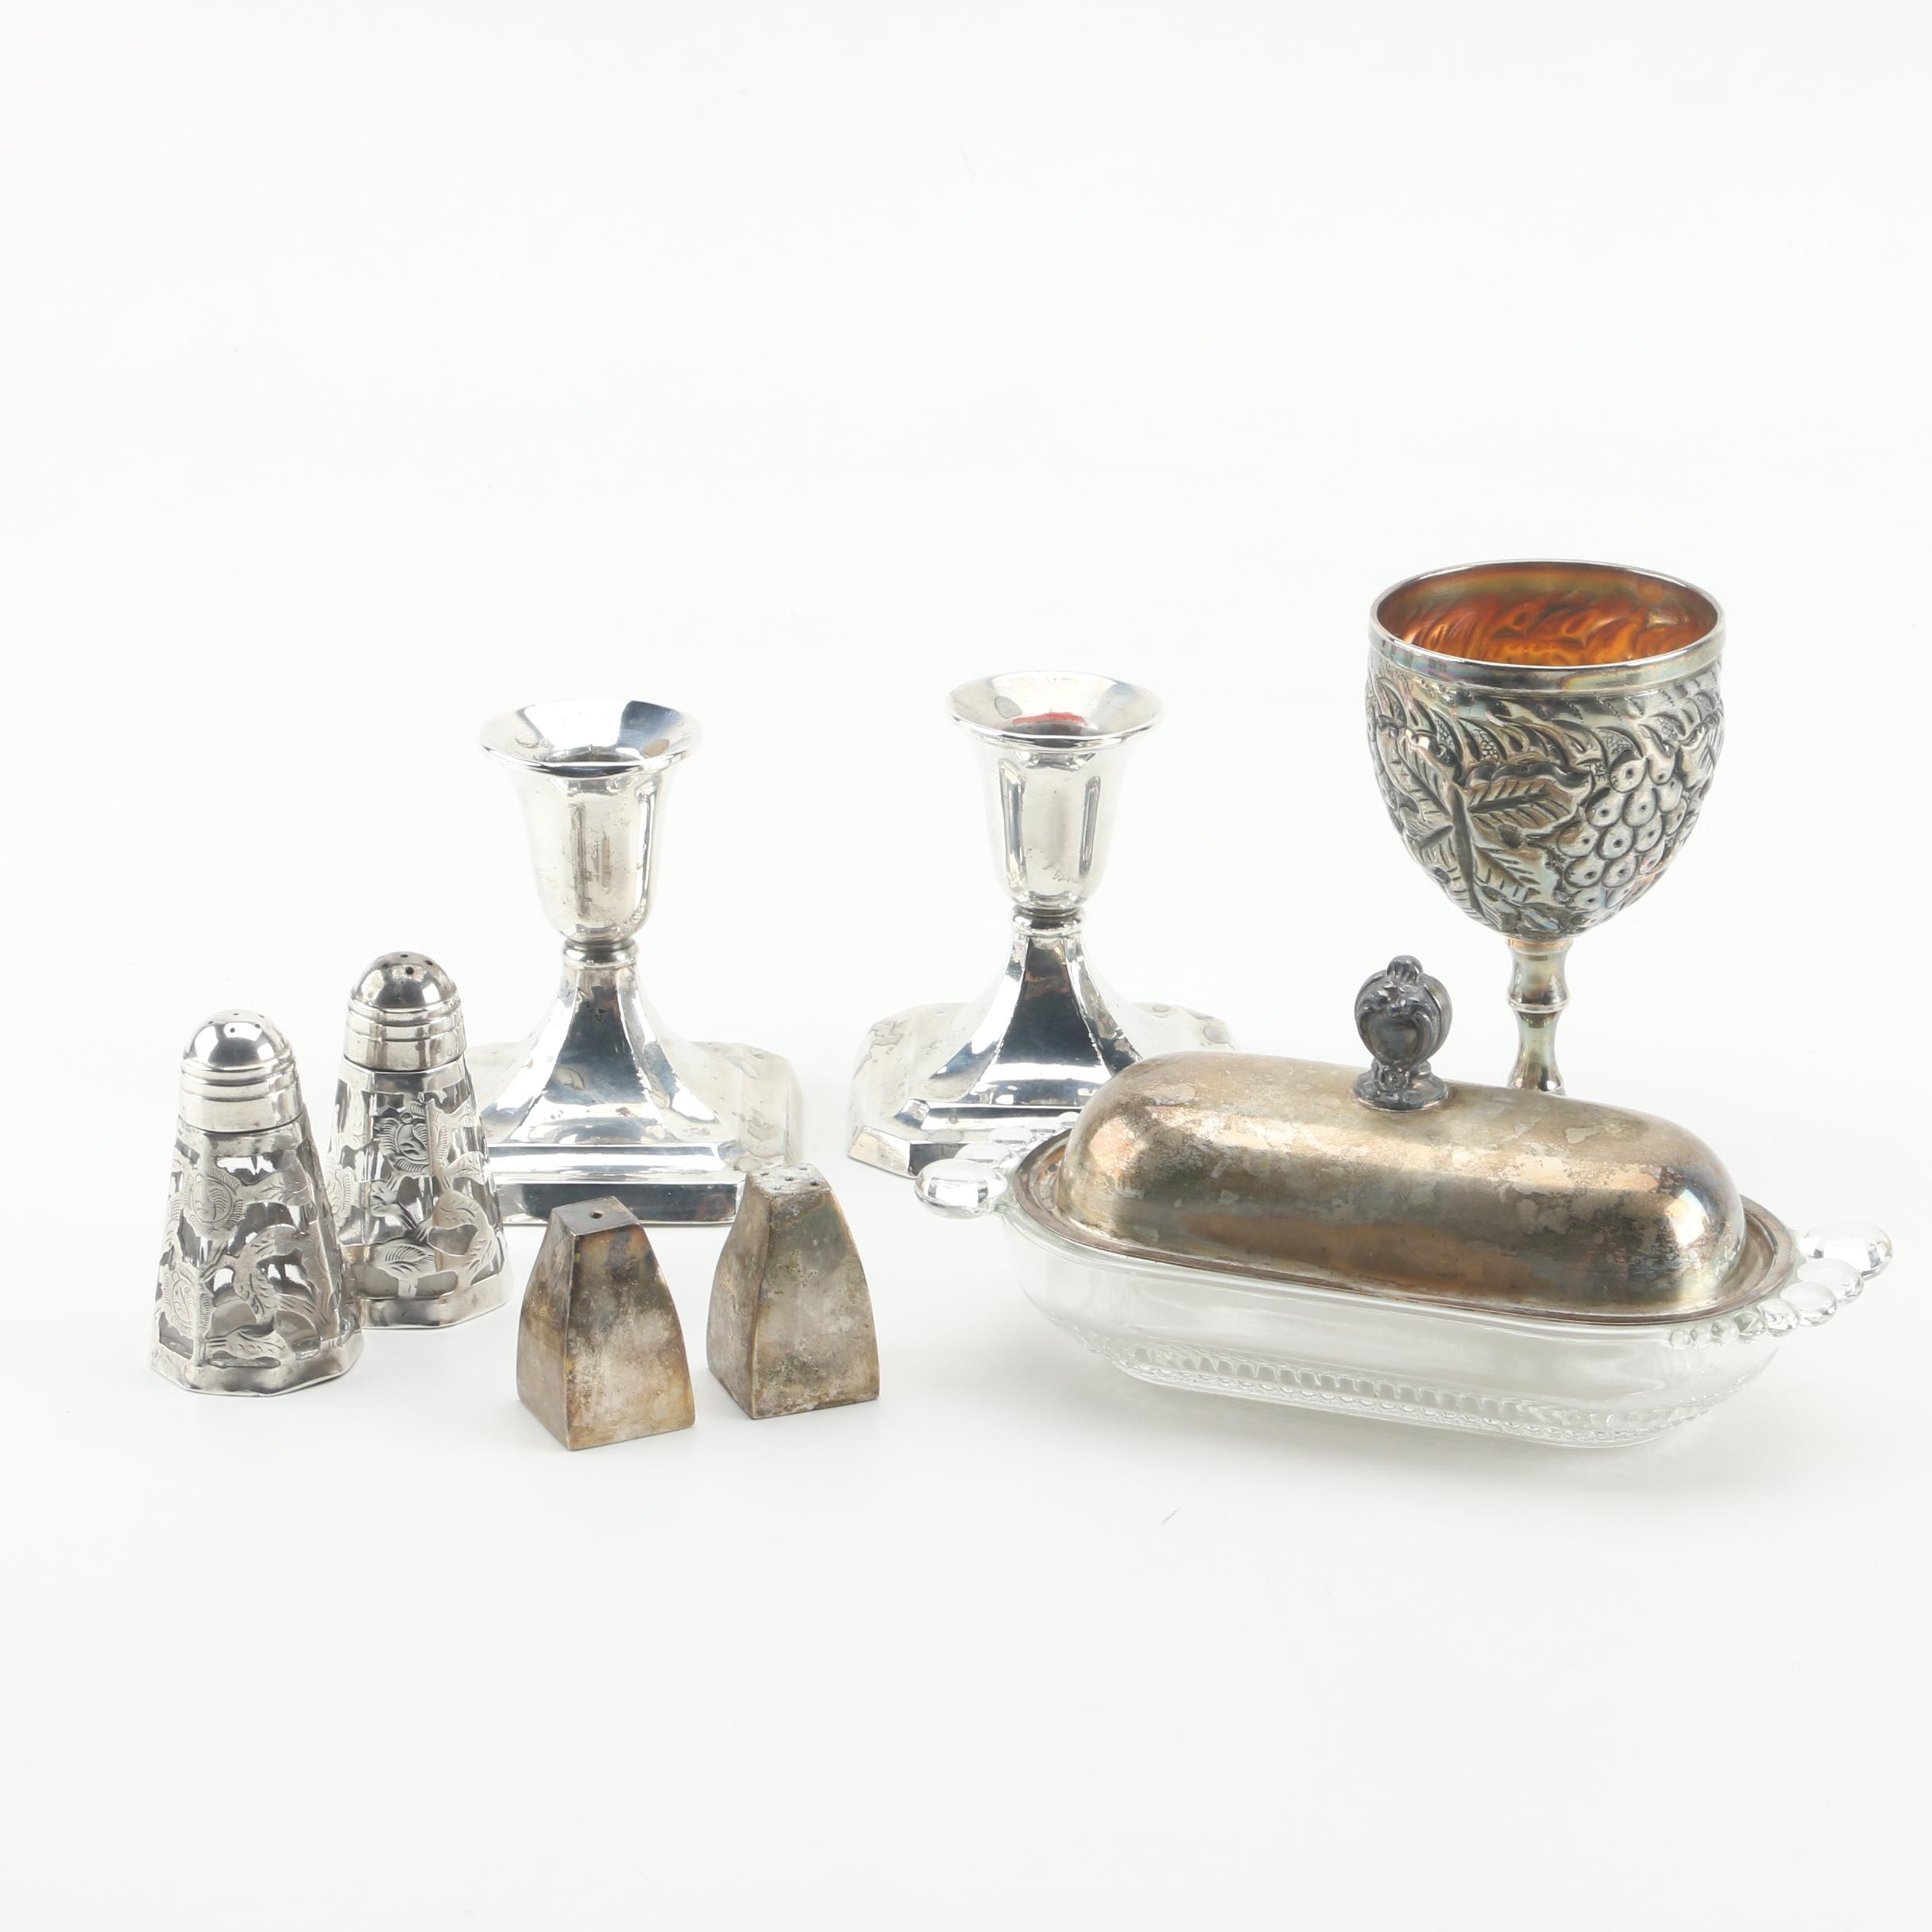 Revere Weighted Sterling Candleholder with Mexican Sterling and Silver Plate